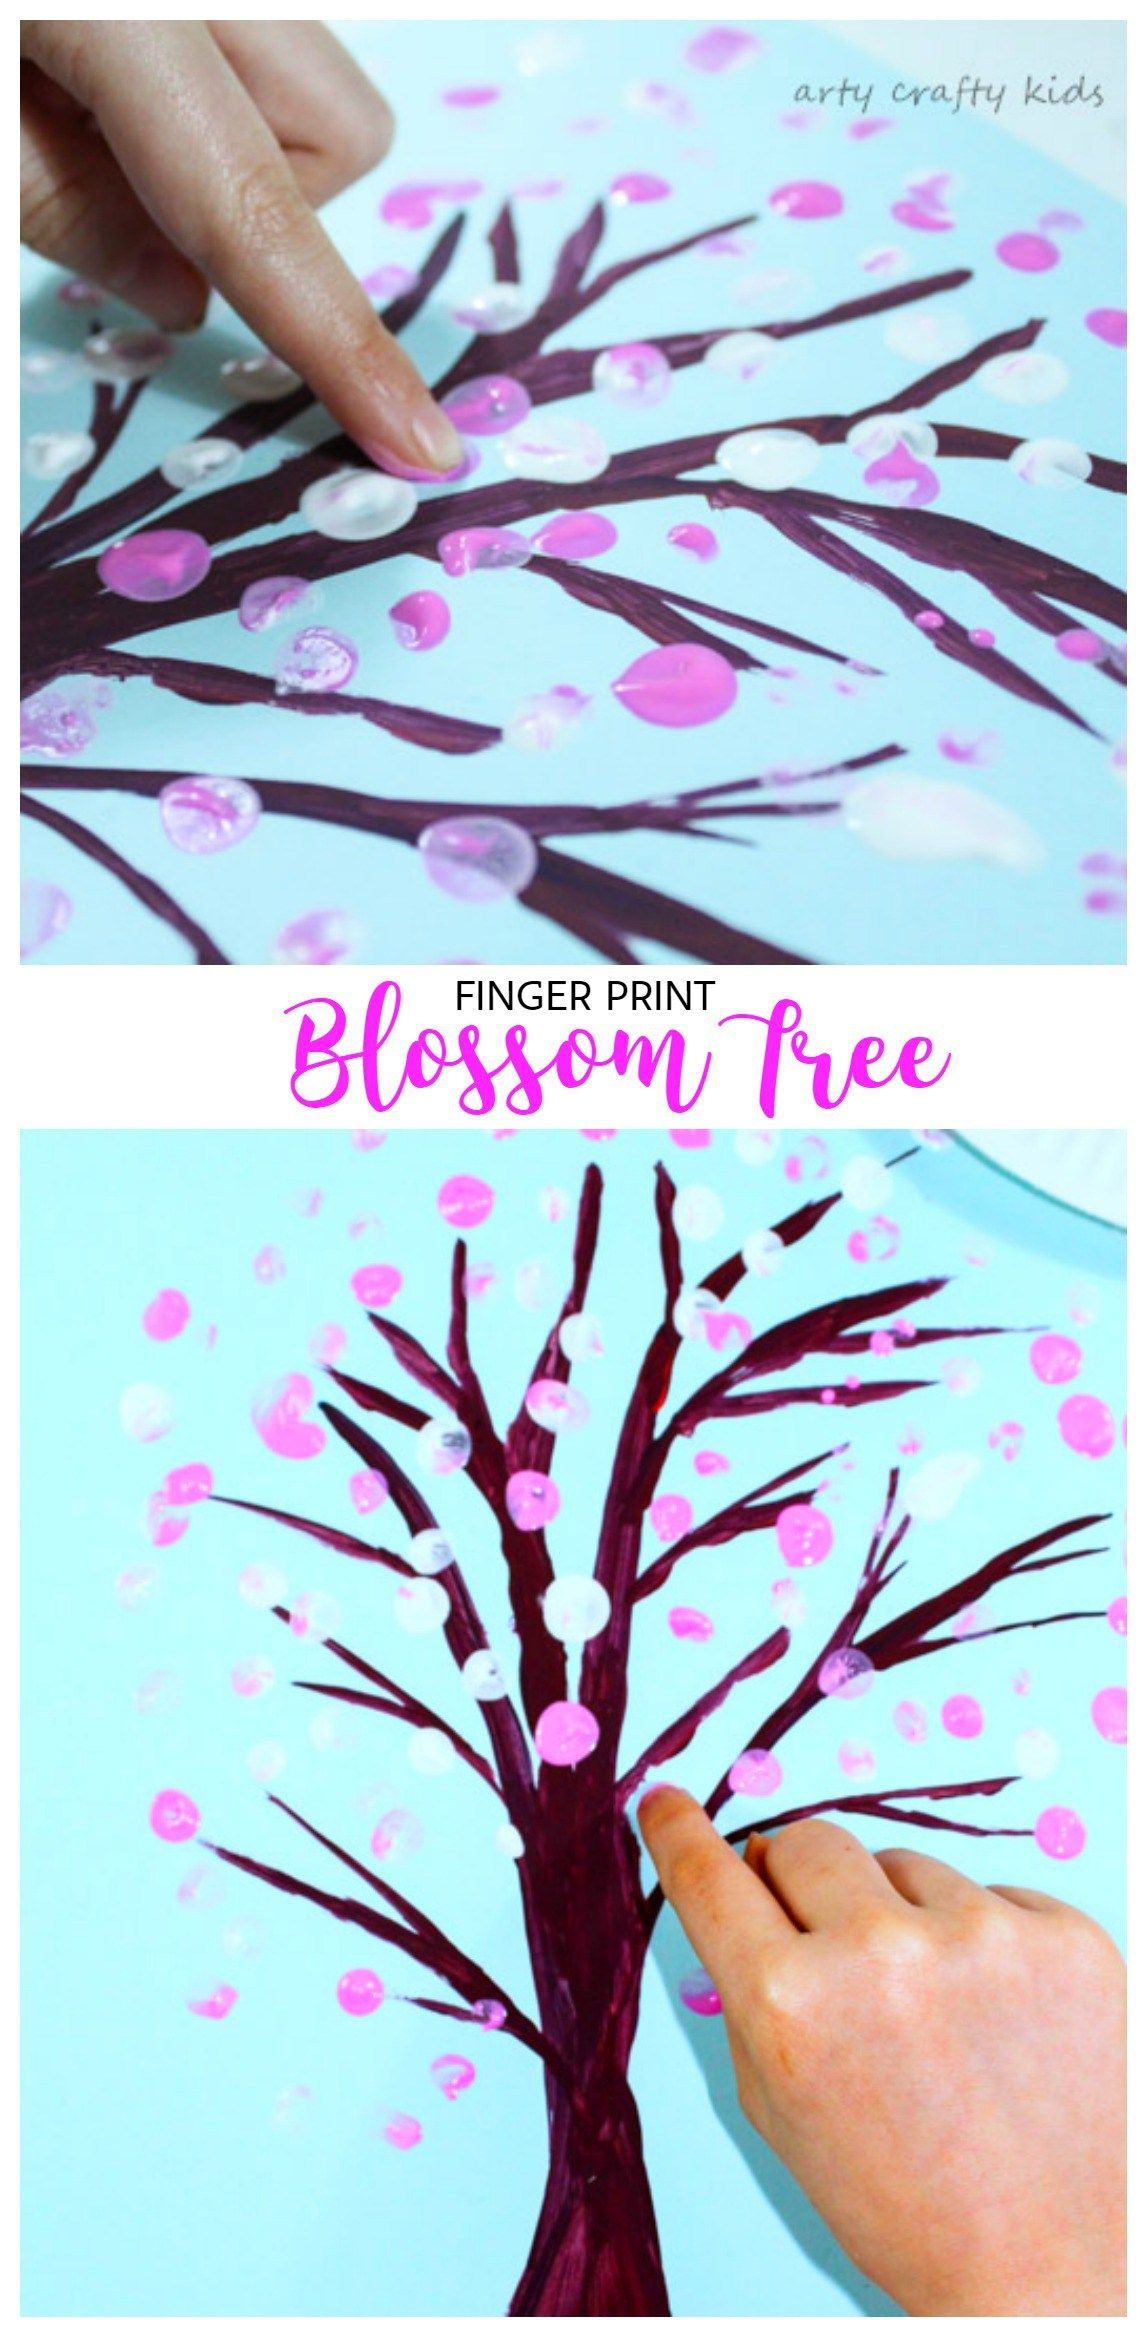 finger print spring blossom tree crafty kids finger print and